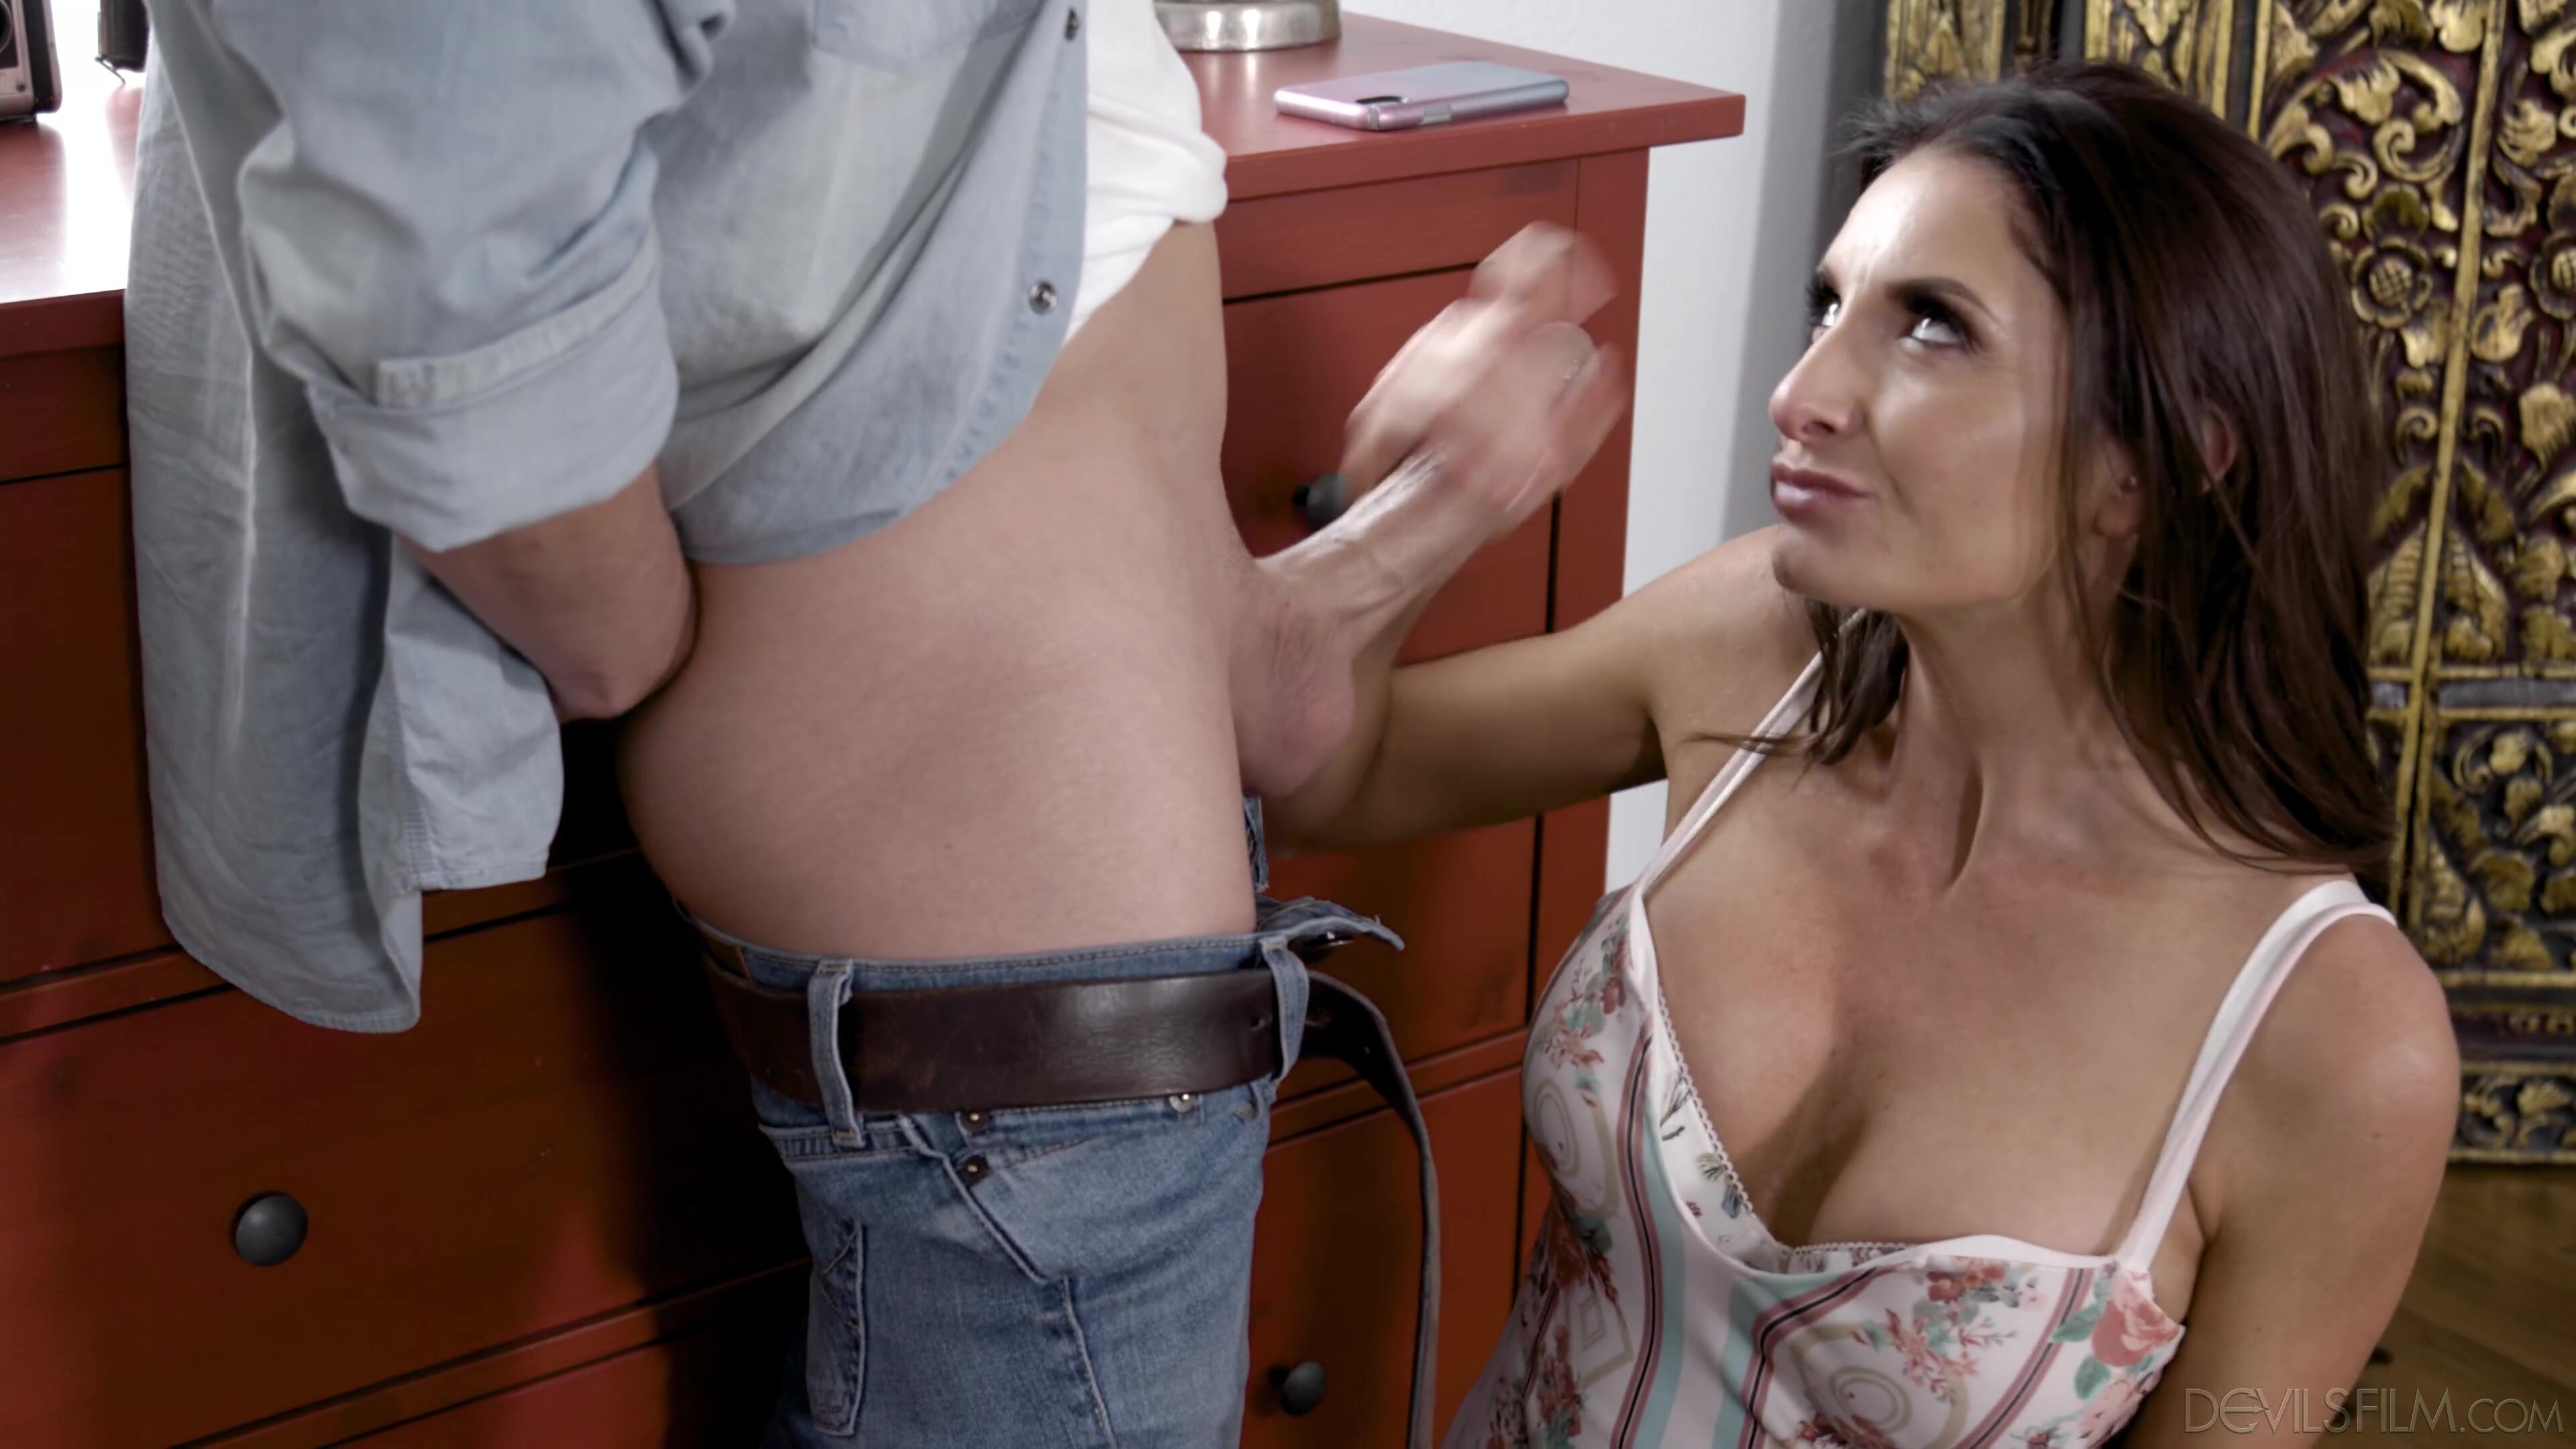 An Exception For Anal - Silvia Saige